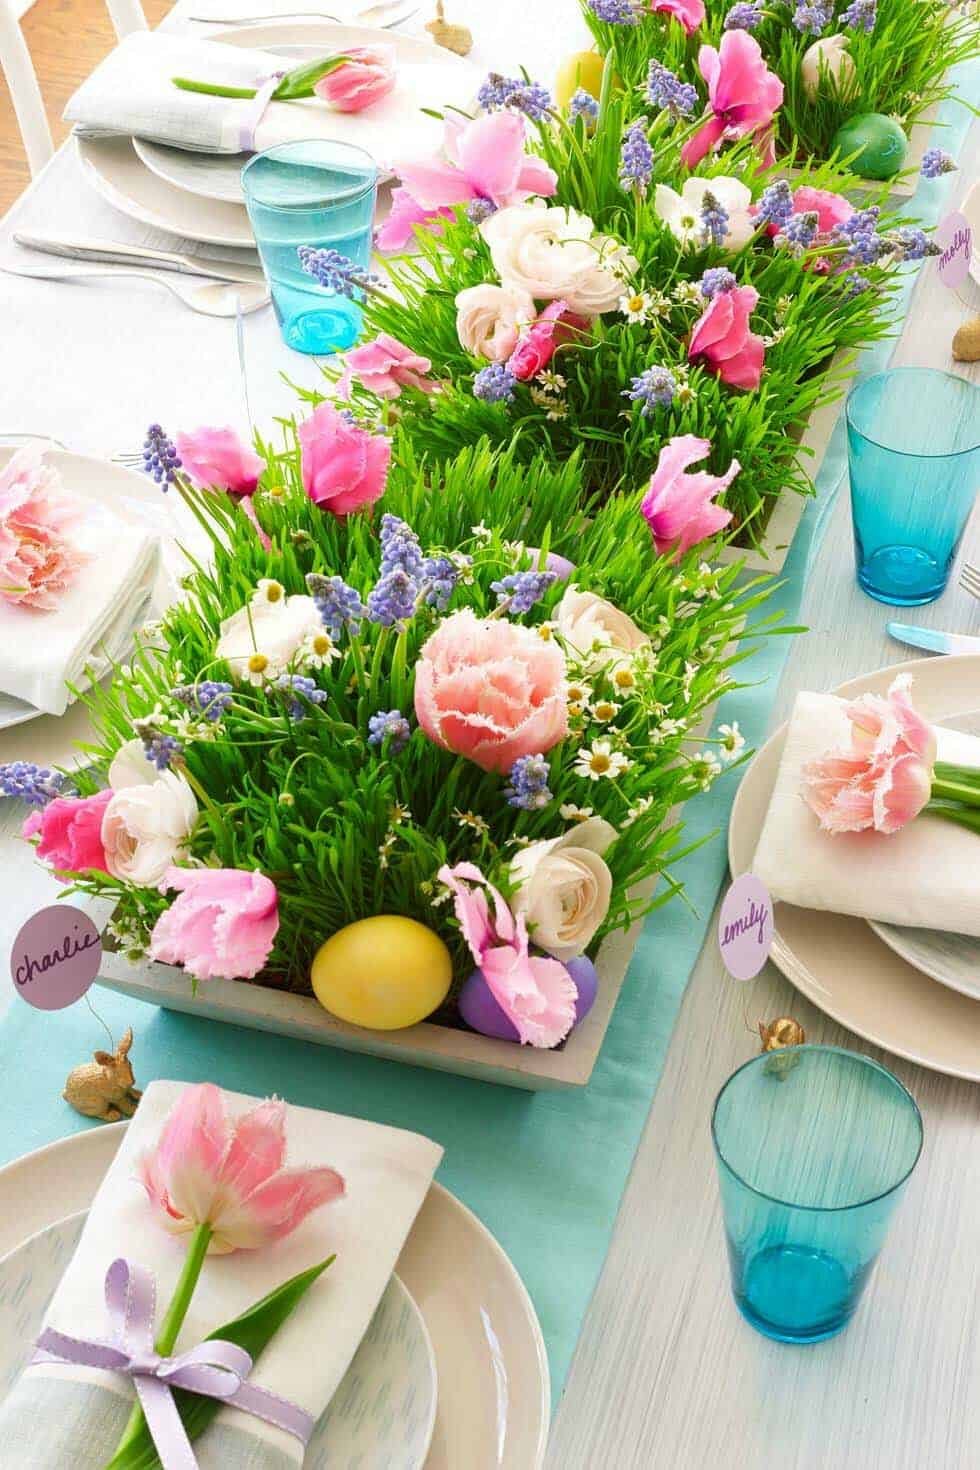 Inspiring Easter Table Centerpiece Ideas-22-1 Kindesign